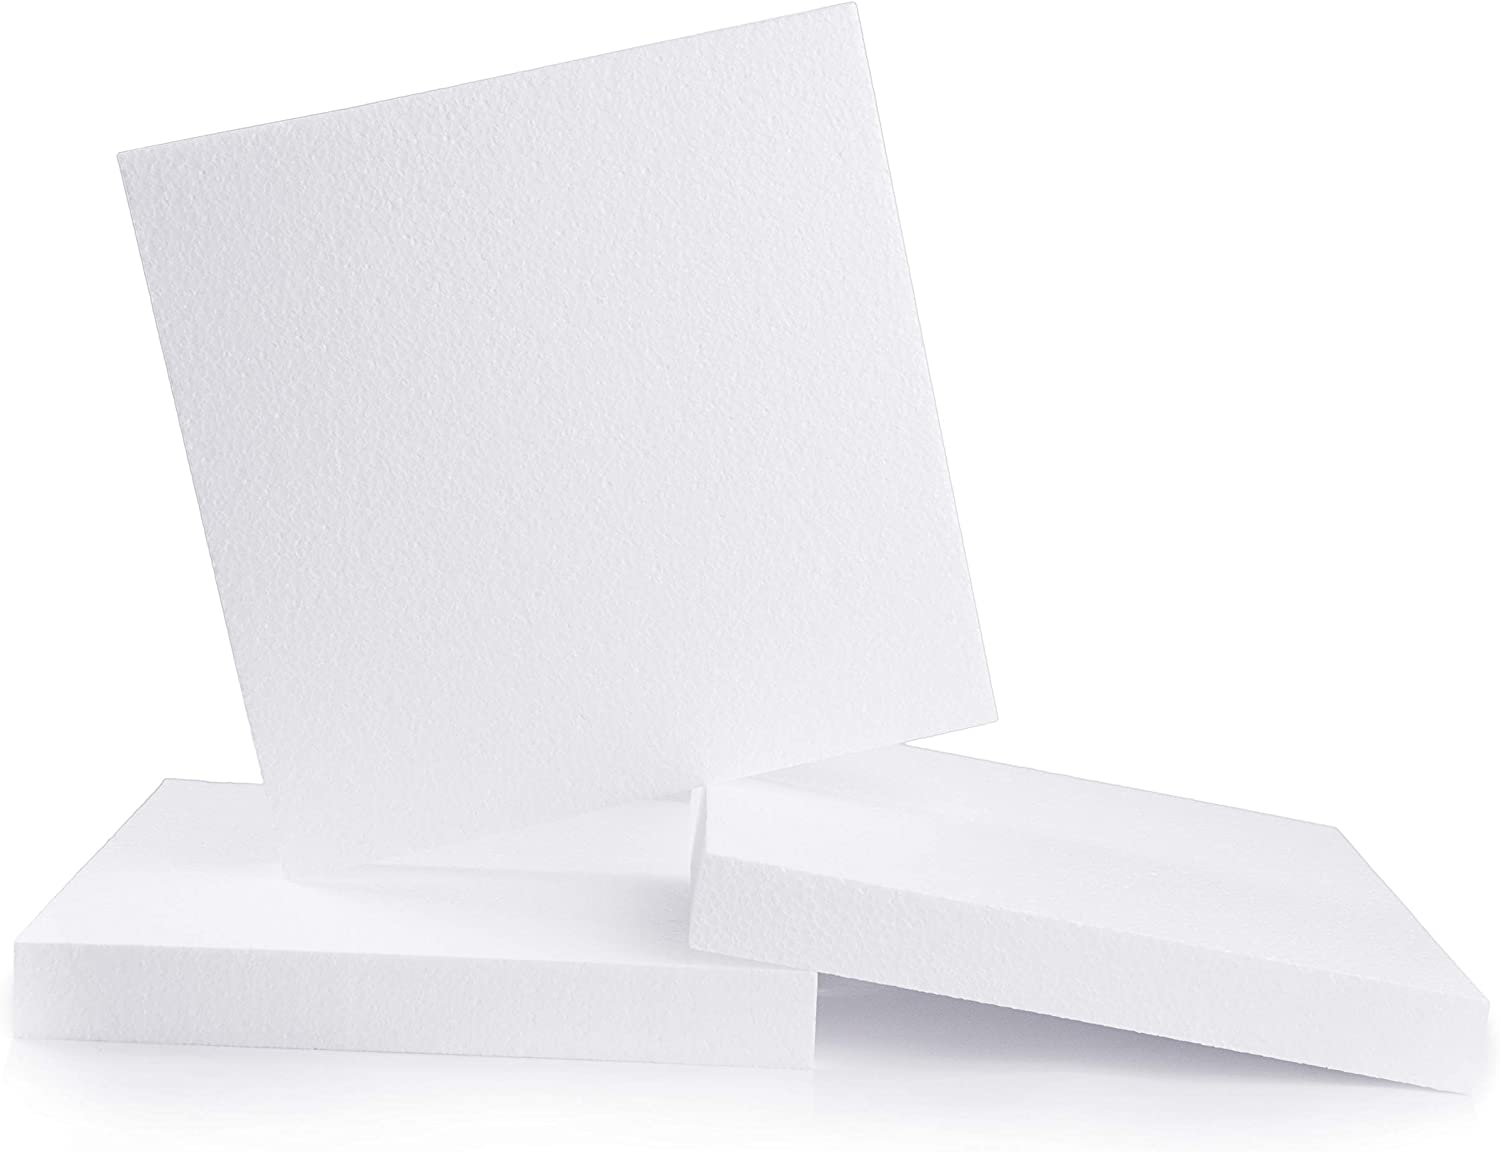 Silverlake Craft Foam Block - 3 Pack of 12x12x1.5 EPS Polystyrene Blocks for Crafting, Modeling, Art Projects and Floral Arrangements - Sculpting Sheet for DIY School & Home Art Projects (3)